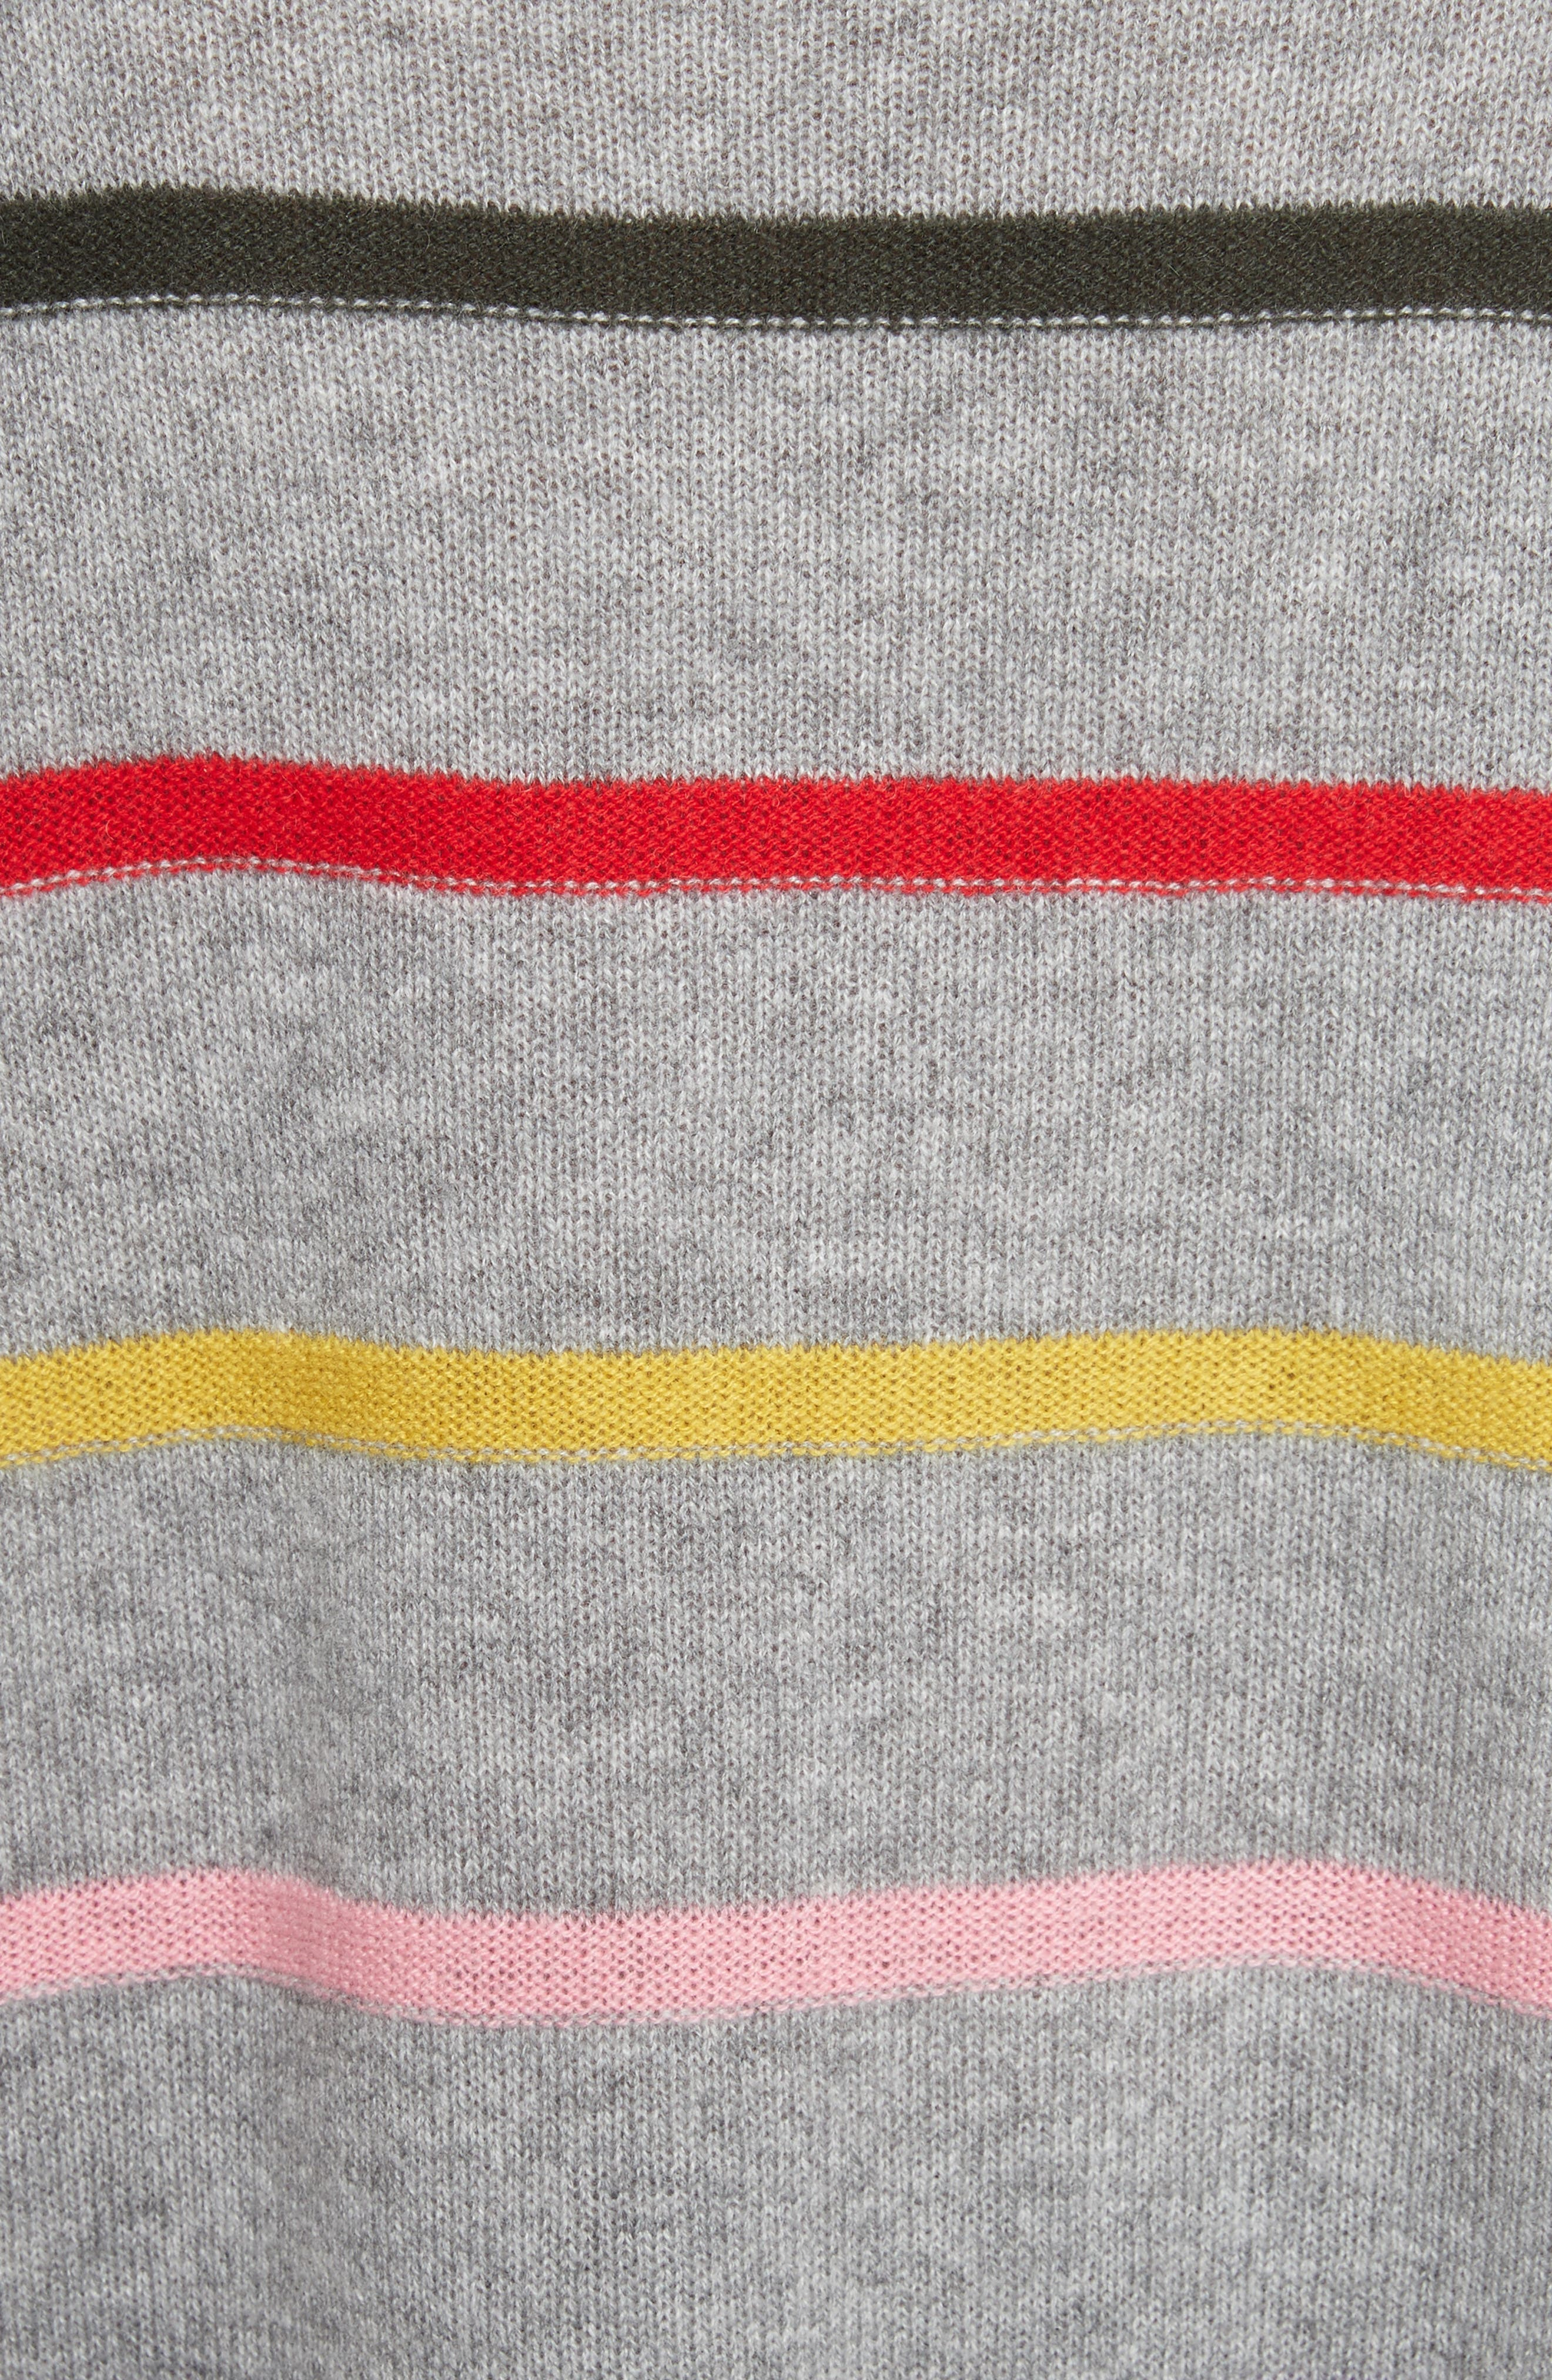 Stripe Cashmere Sweater,                             Alternate thumbnail 5, color,                             021